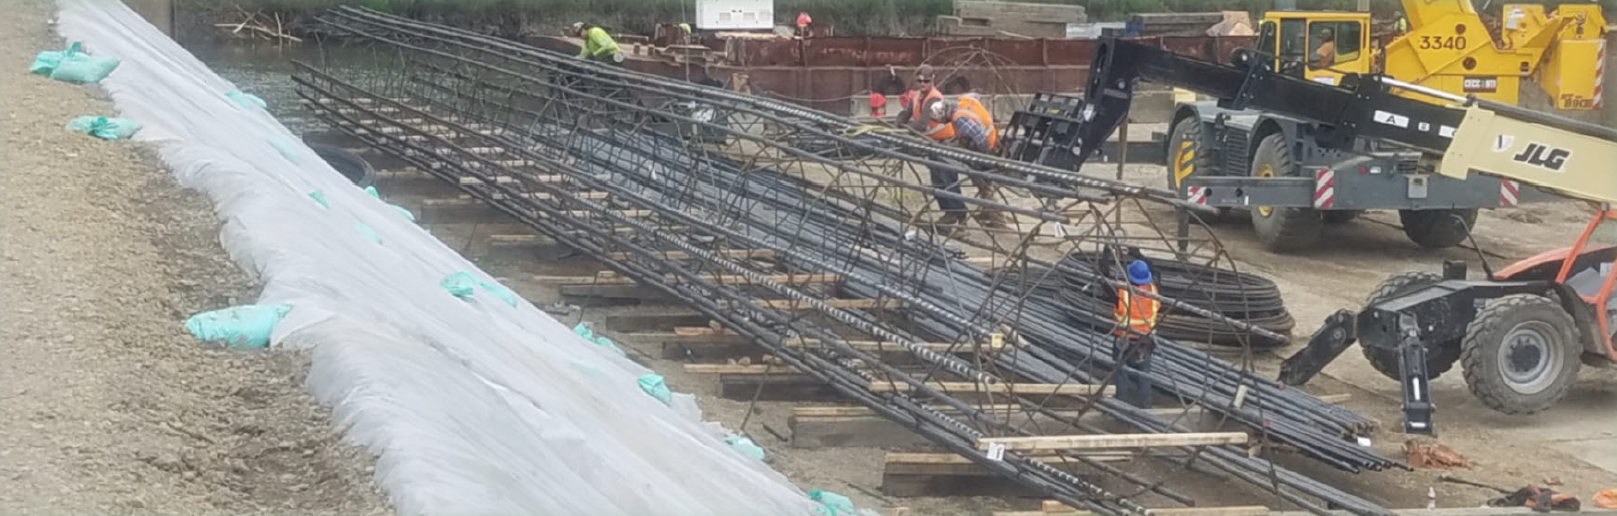 A rebar cage being constructed at the River S Bridge site.